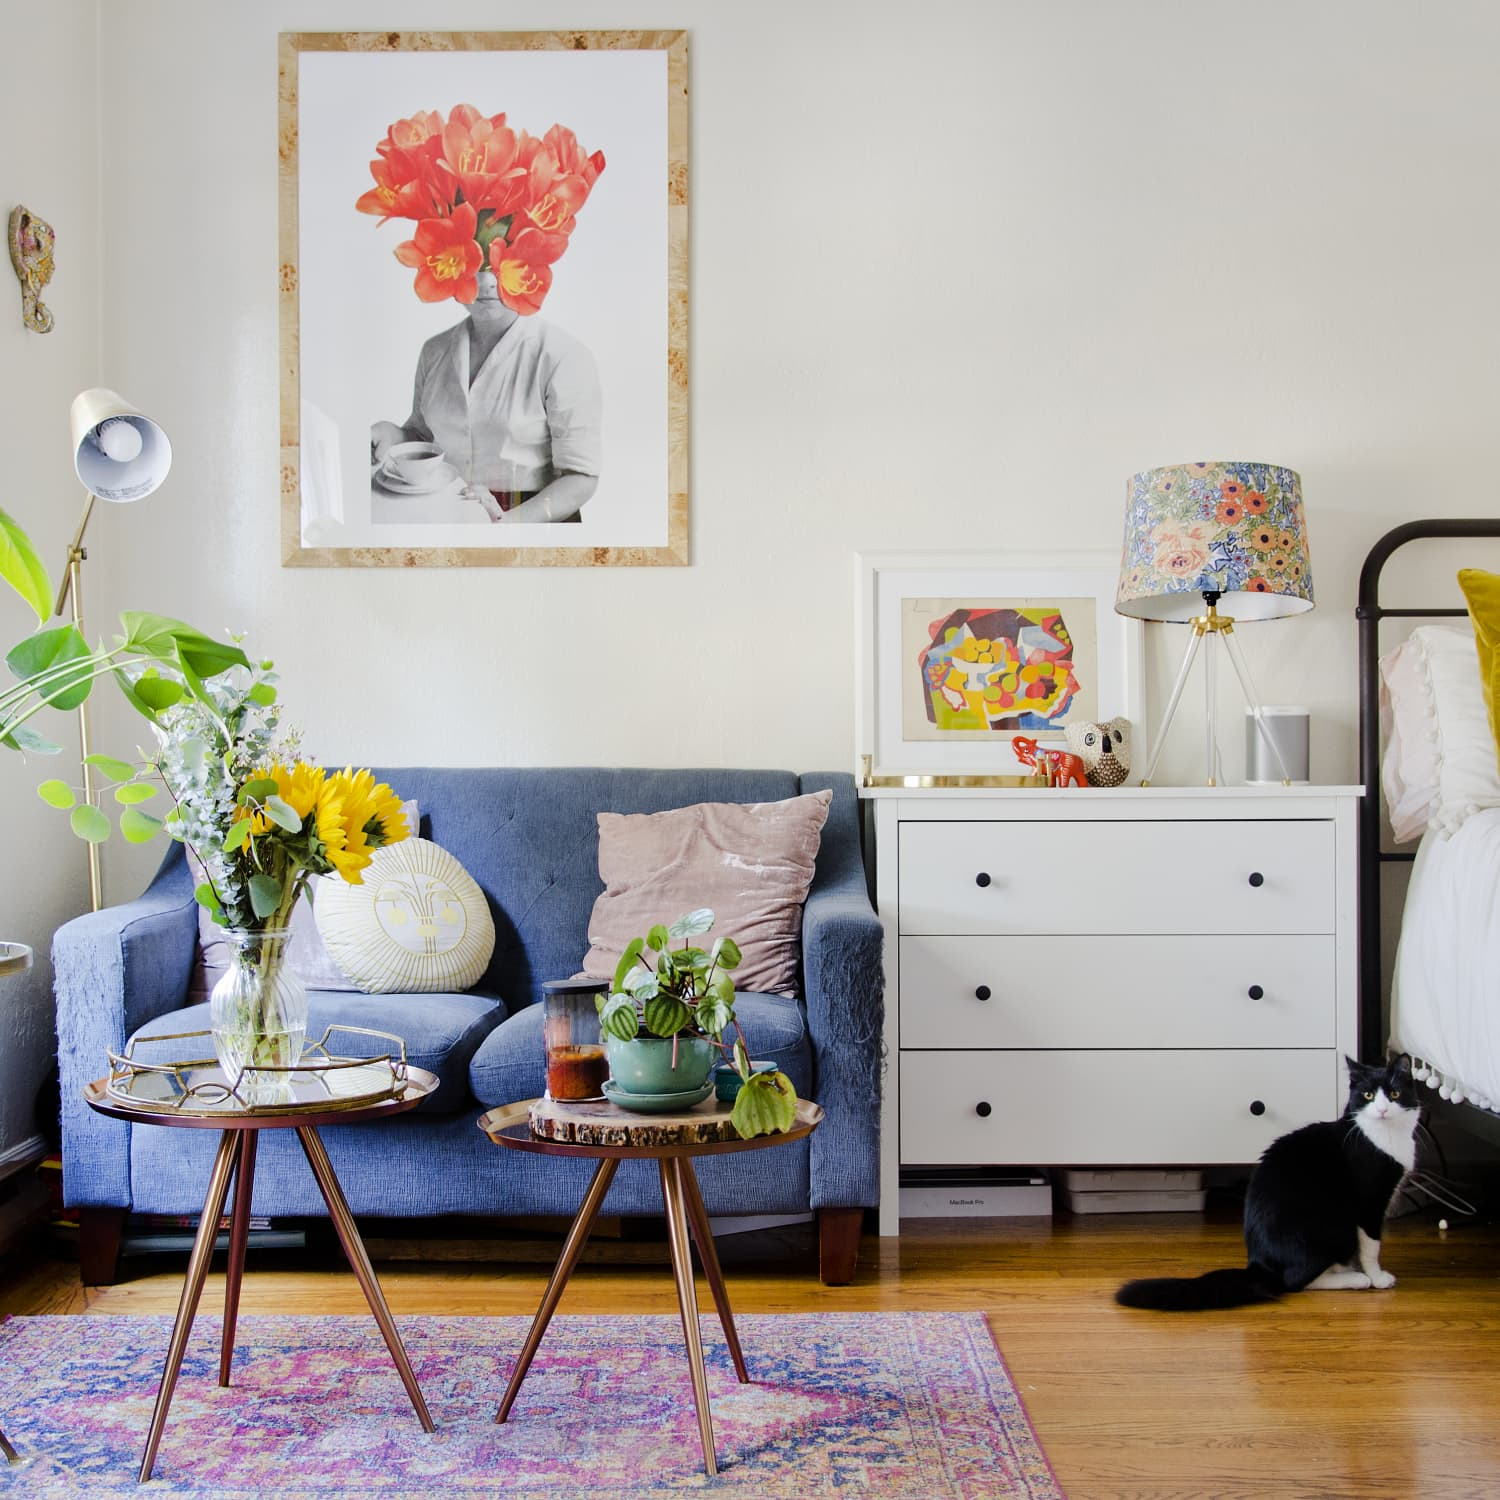 The Best Places to Buy Furniture and Home Decor Online